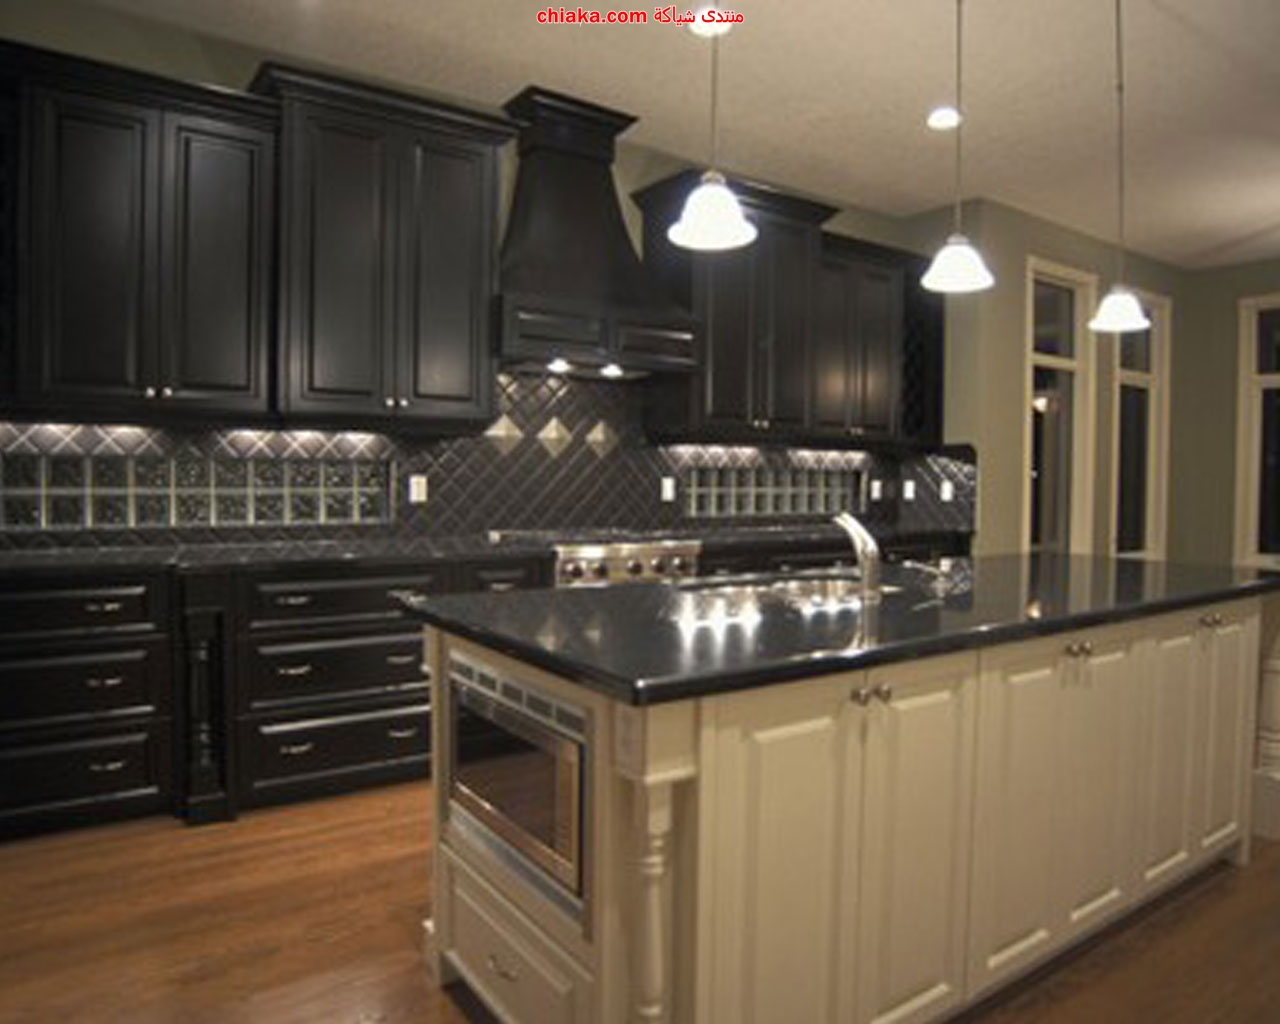 pictures of white kitchen cabinets with black appliances ديكورات مطابخ 2013 9883